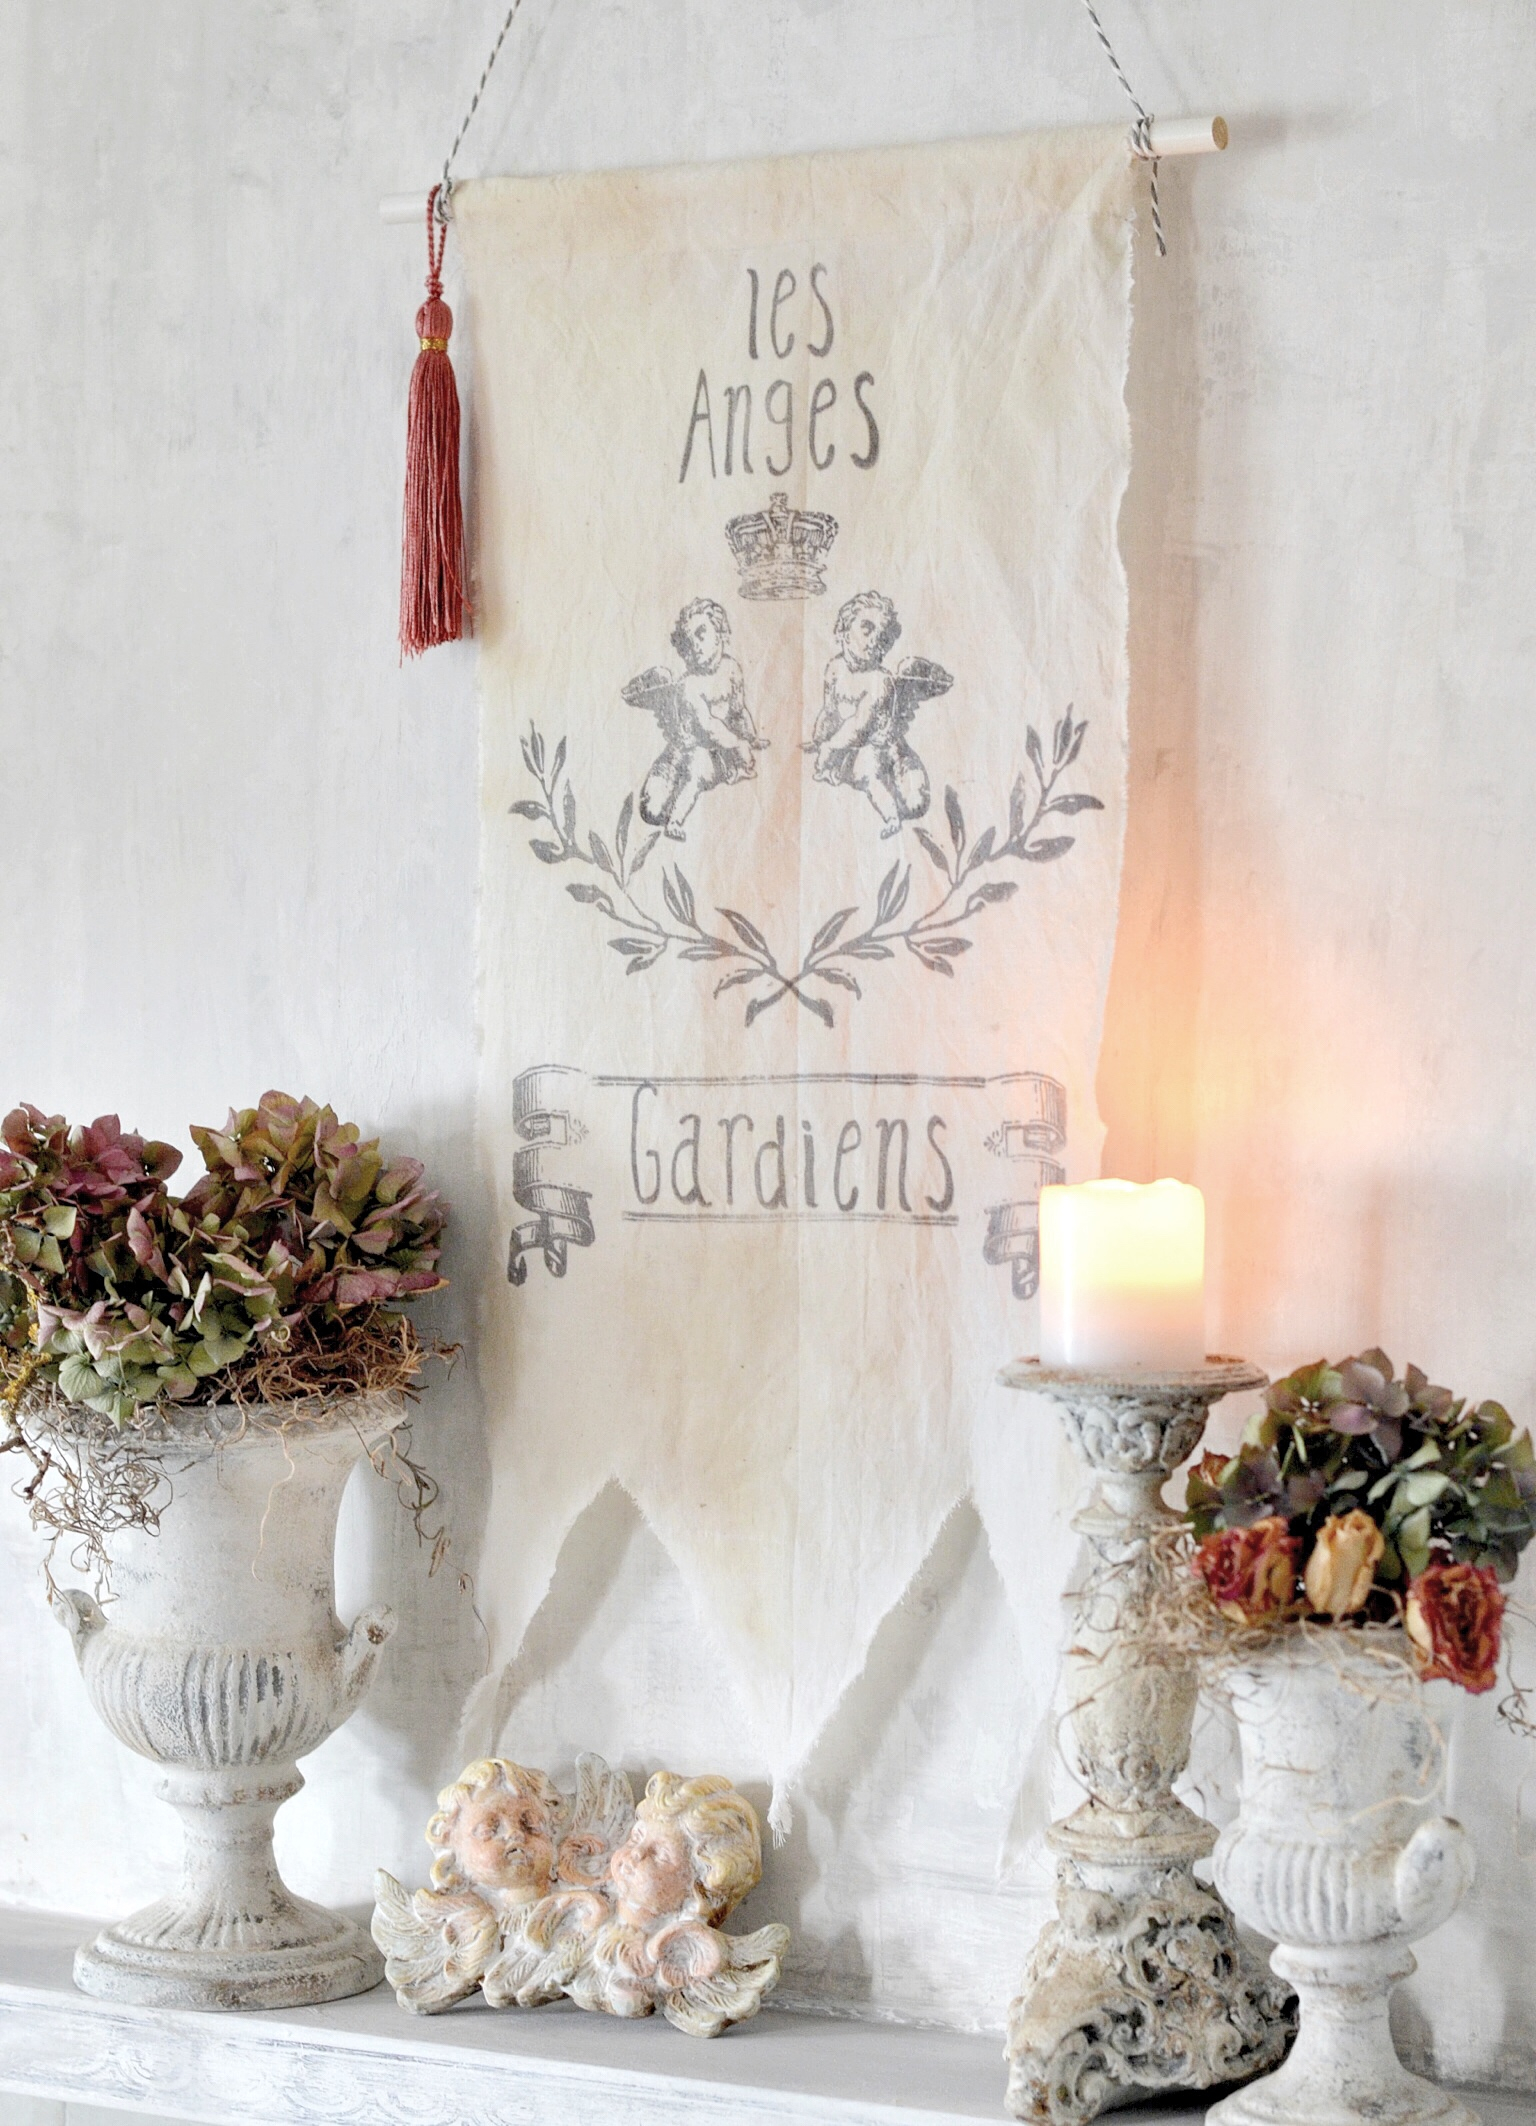 So easy to create and the results are stunning. We hope this inspires you to create a banner of your own for your home.